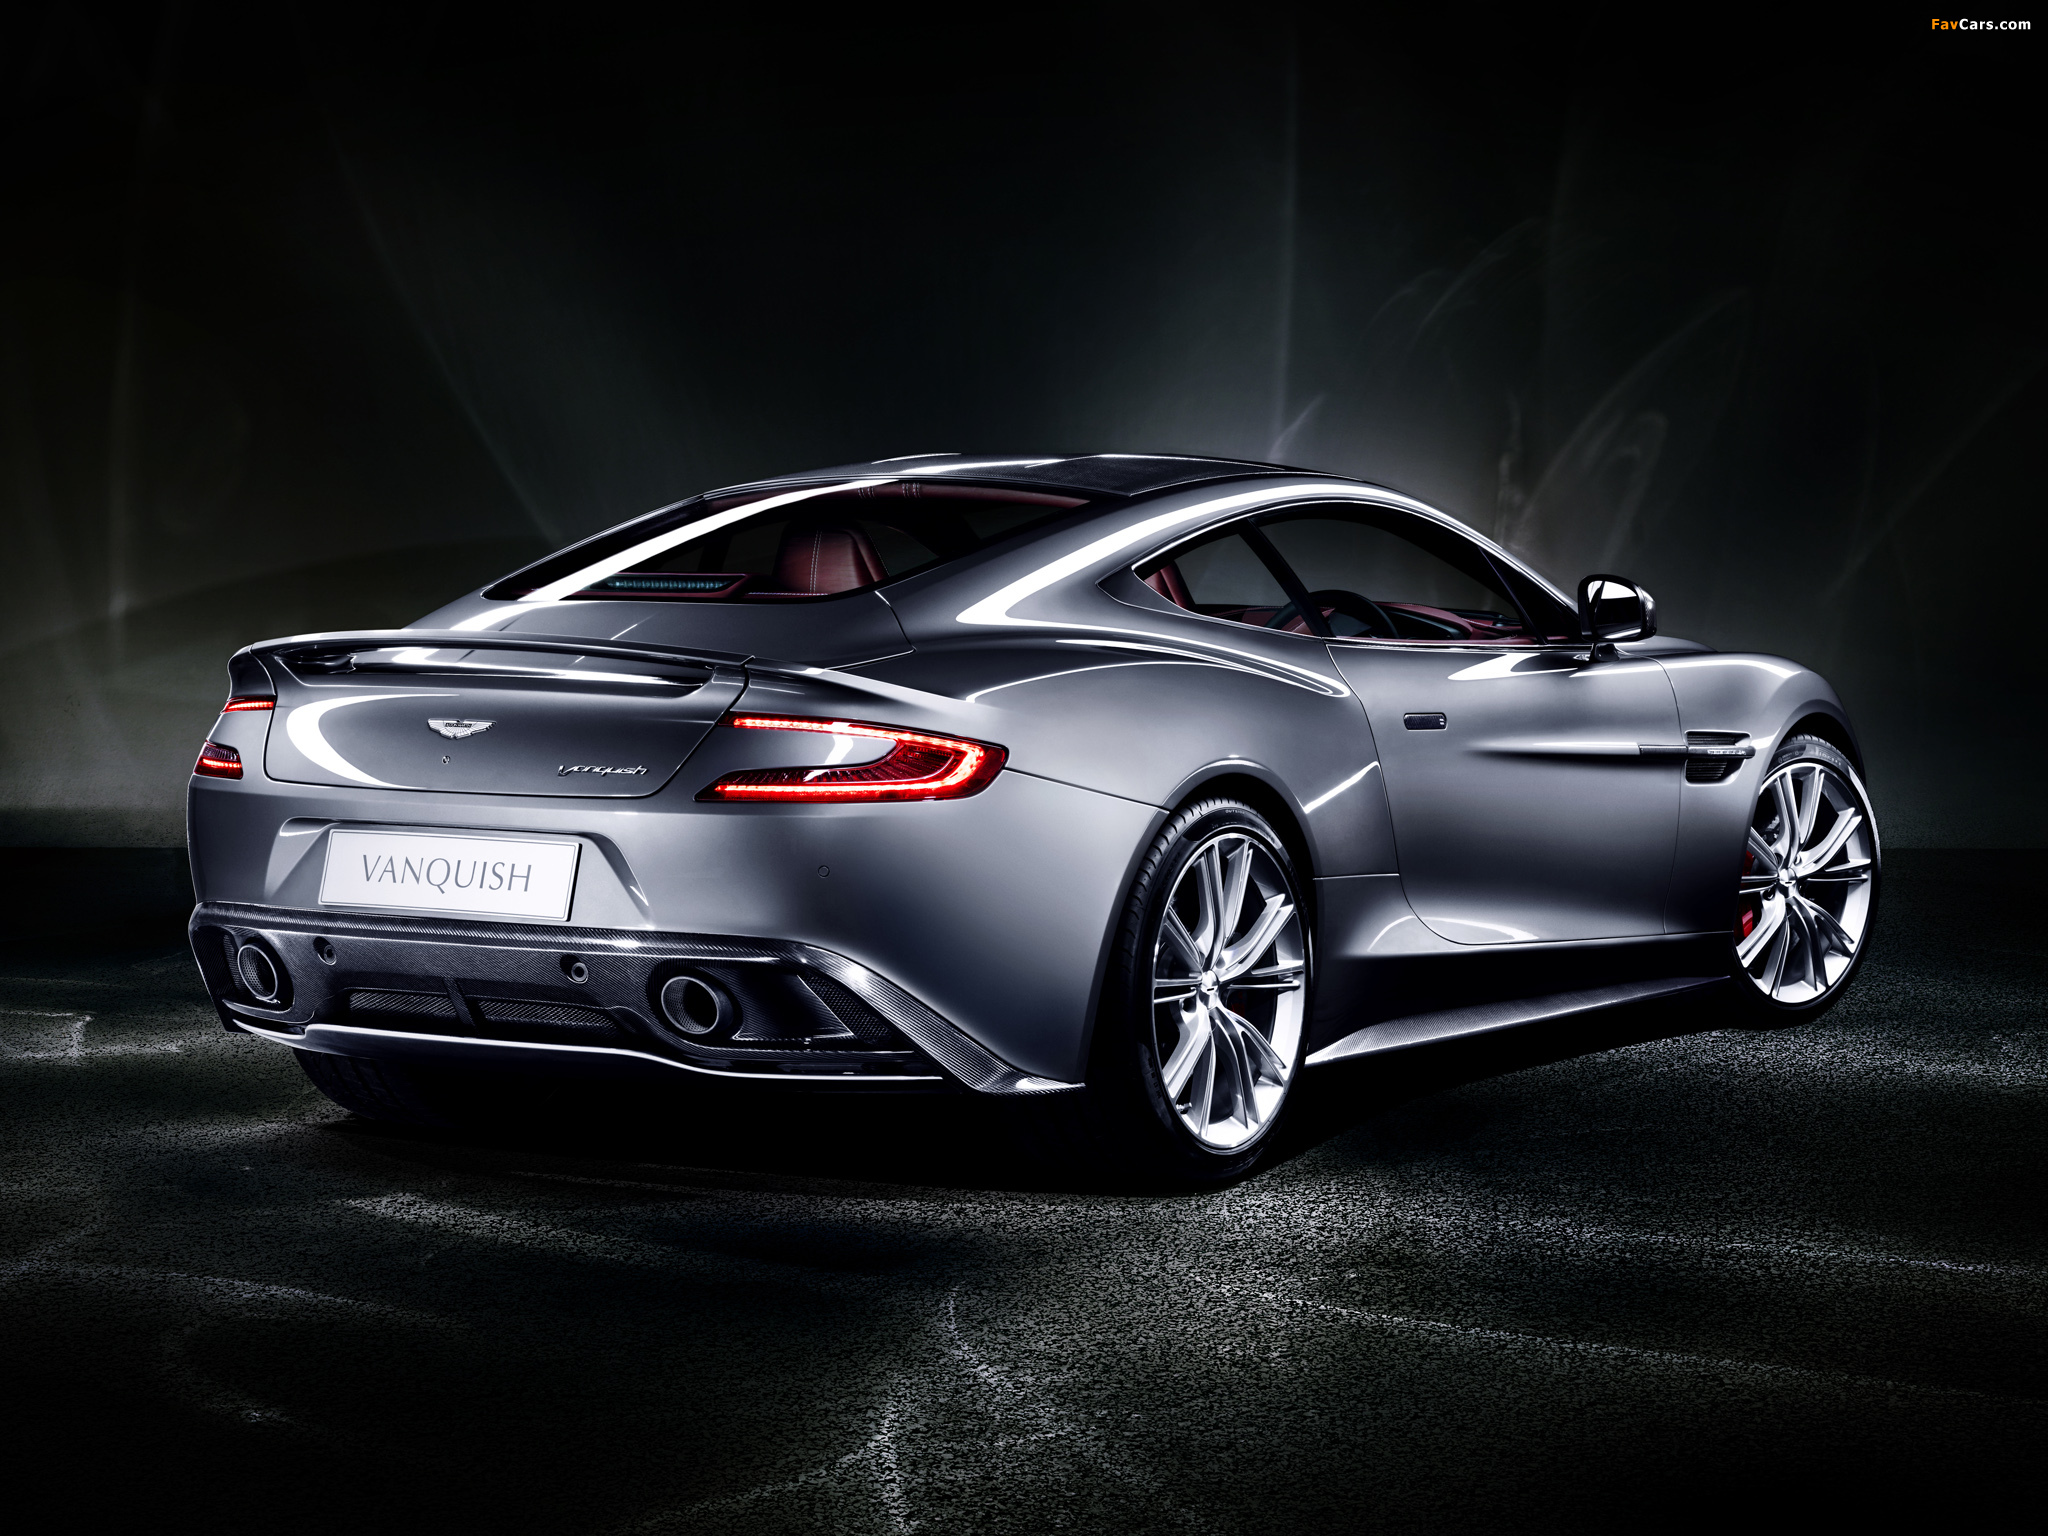 Aston Martin Vanquish UKspec Wallpapers X - Aston martin specs